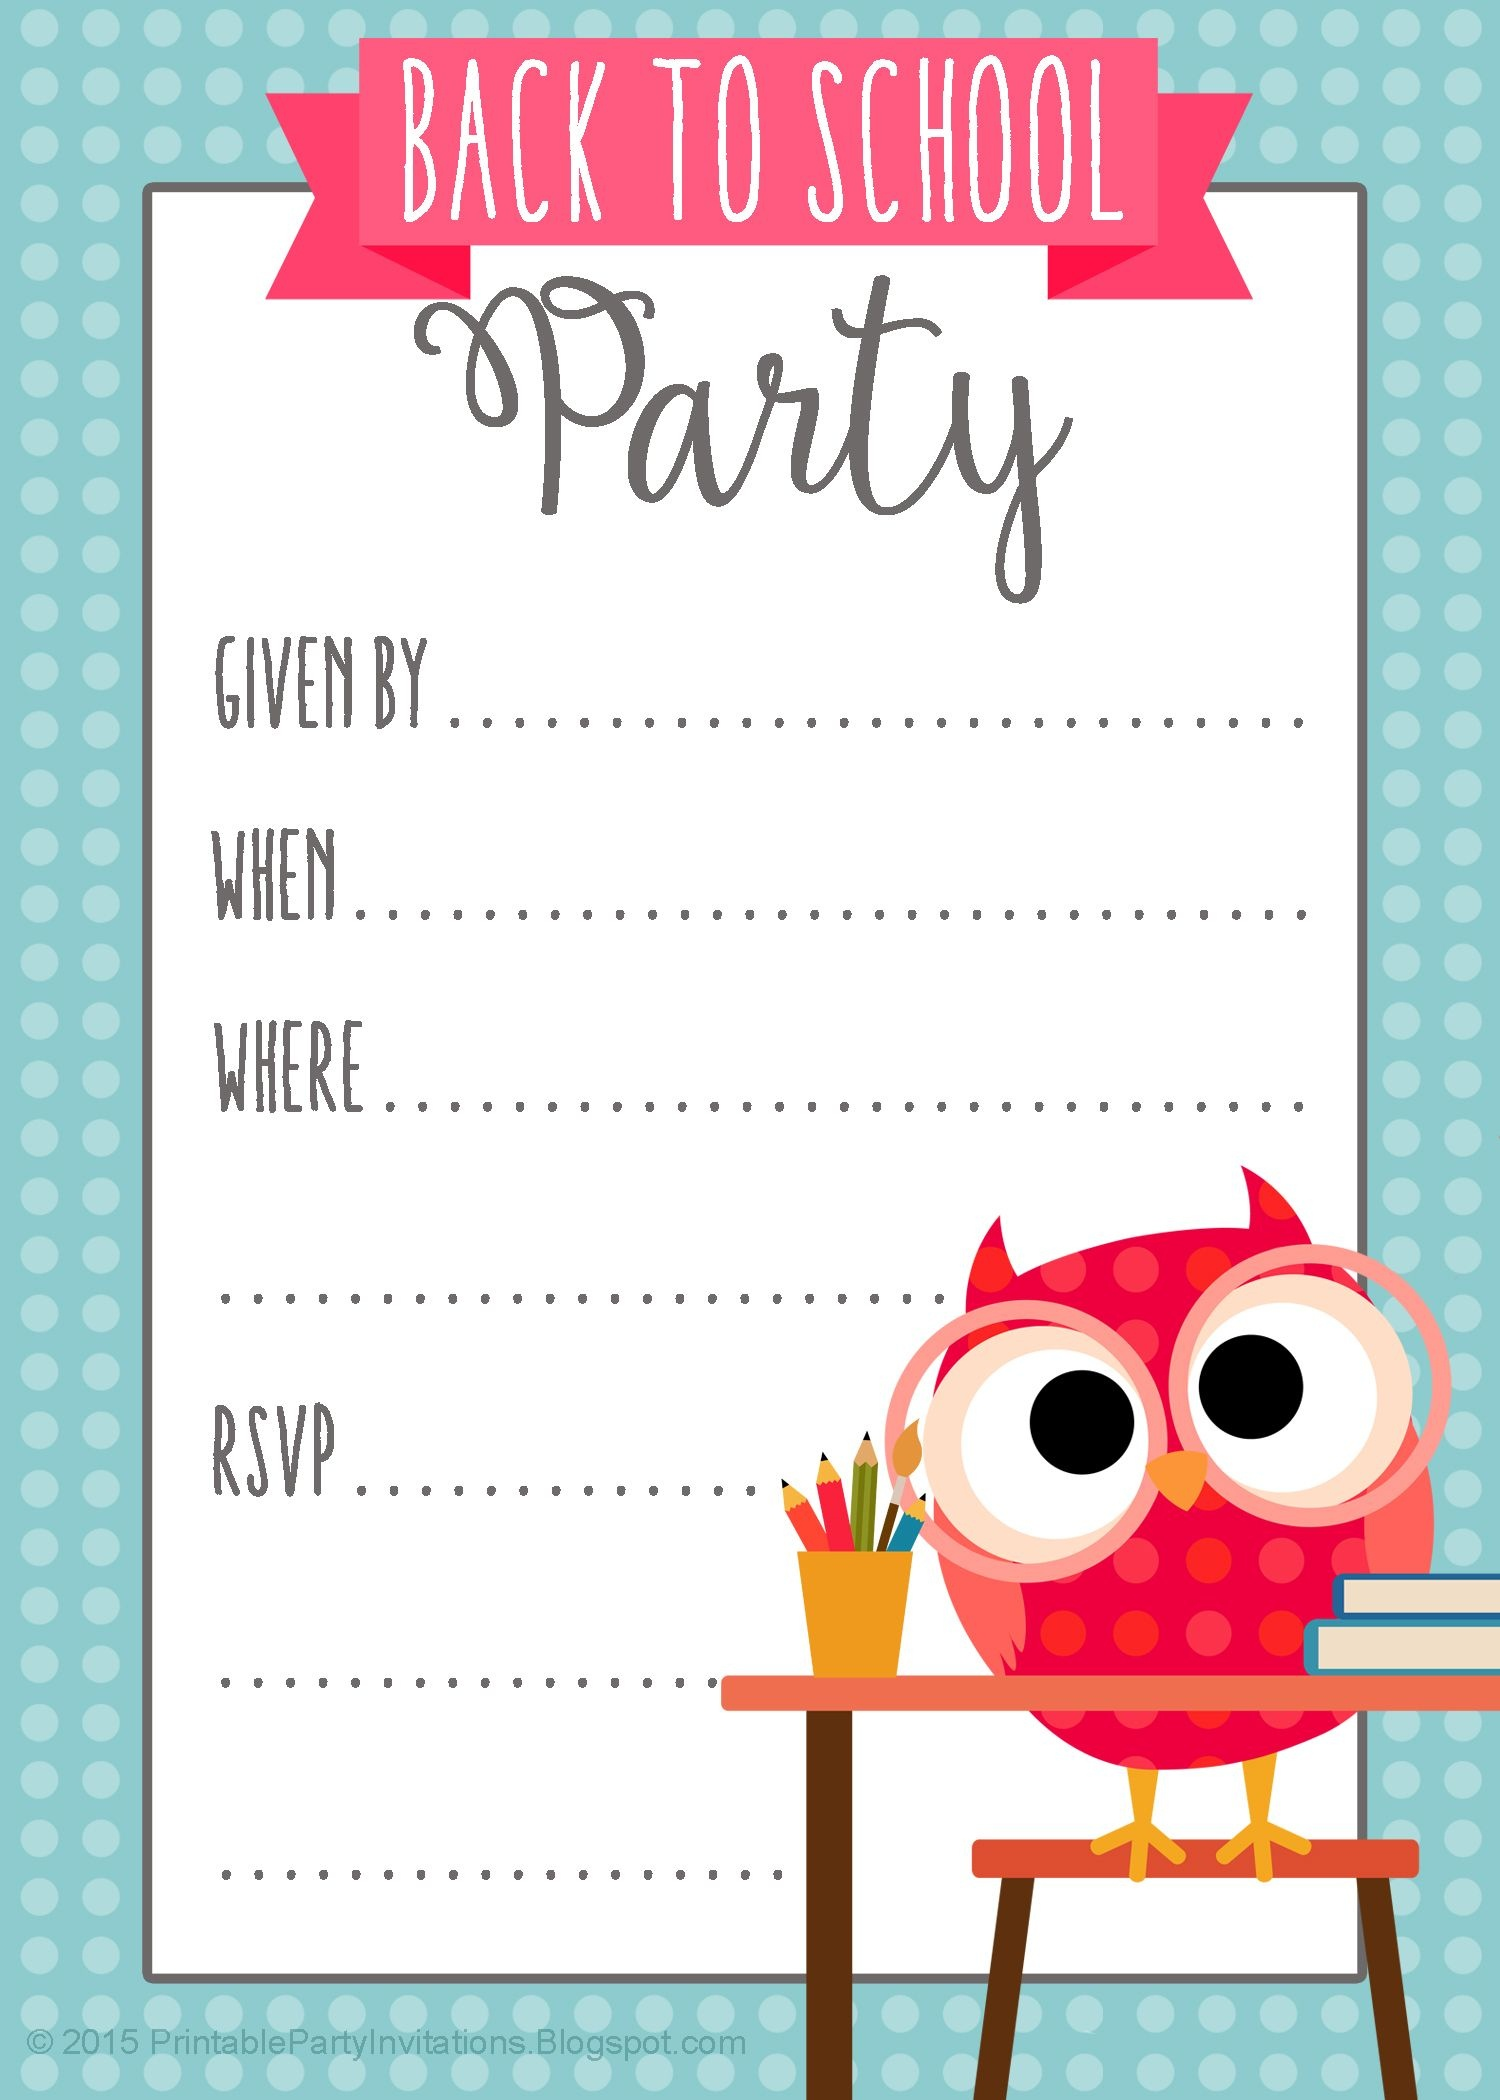 Free Printable Back To School Party Invitation   Party Printables - Free Printable Labor Day Invitations